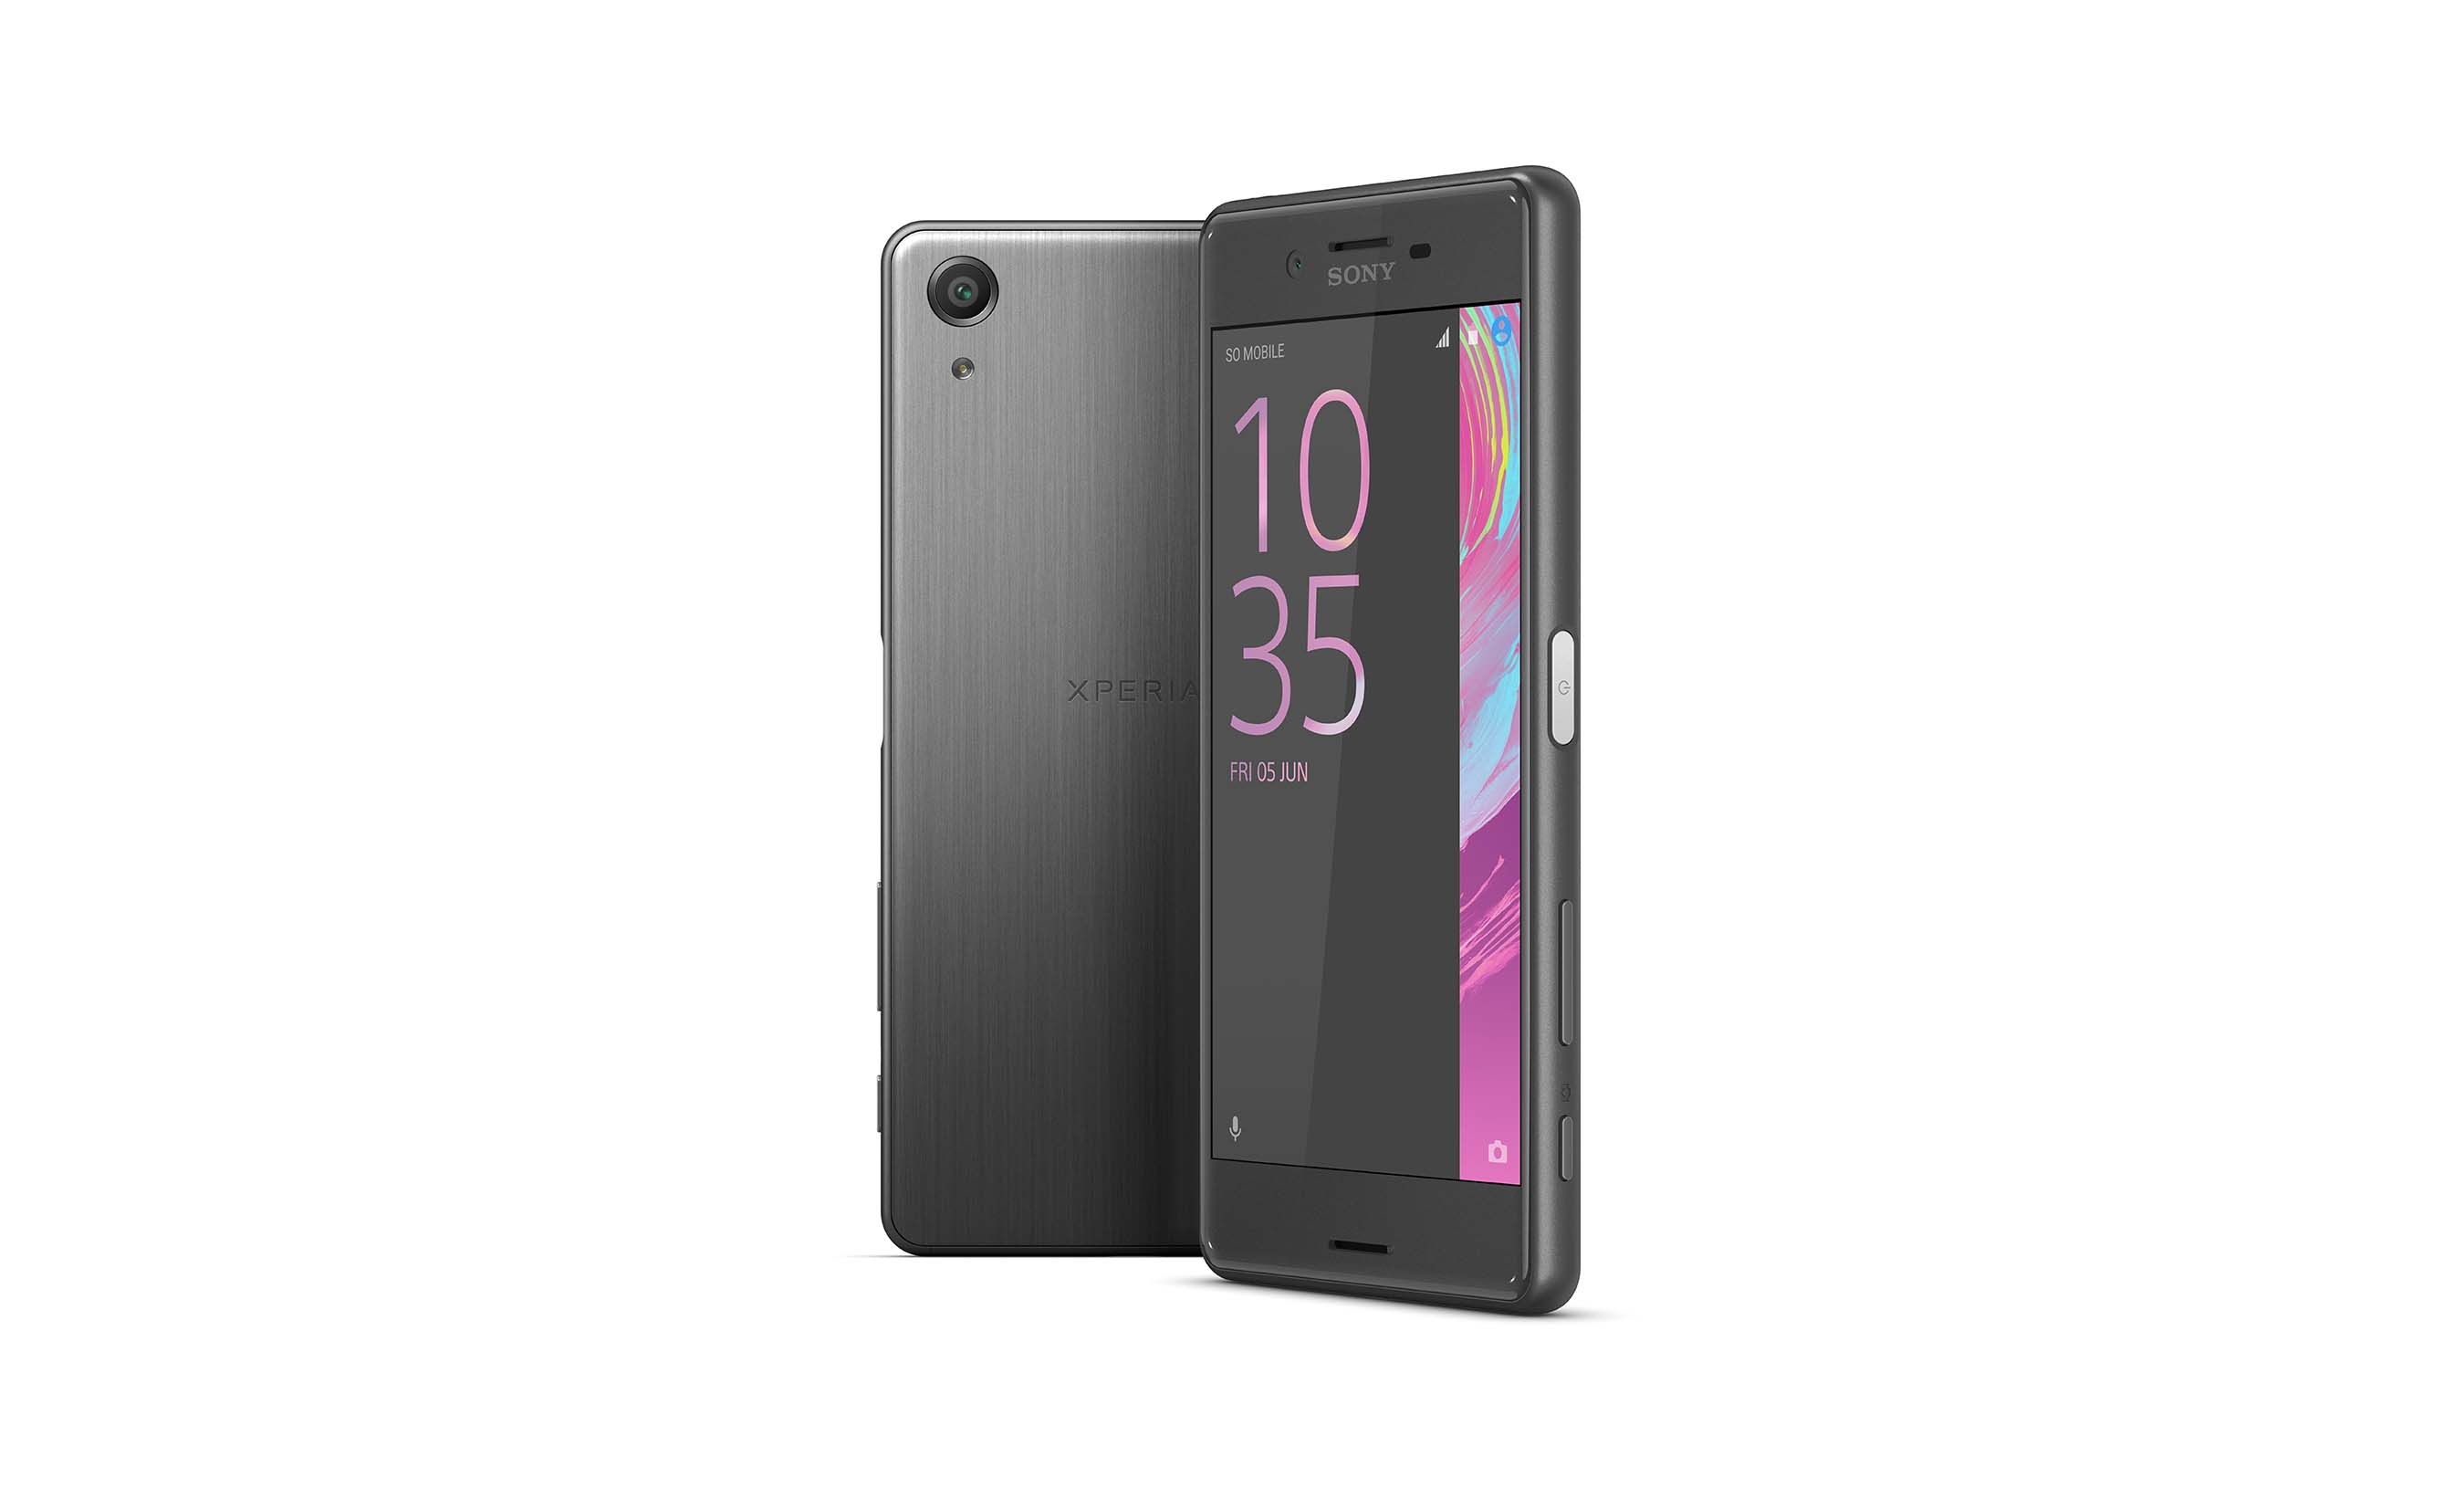 Experience Xperia X Performance, designed to impress at every angle and delivering impressive performance and speed with Qualcomm Snapdragon 820 processor.